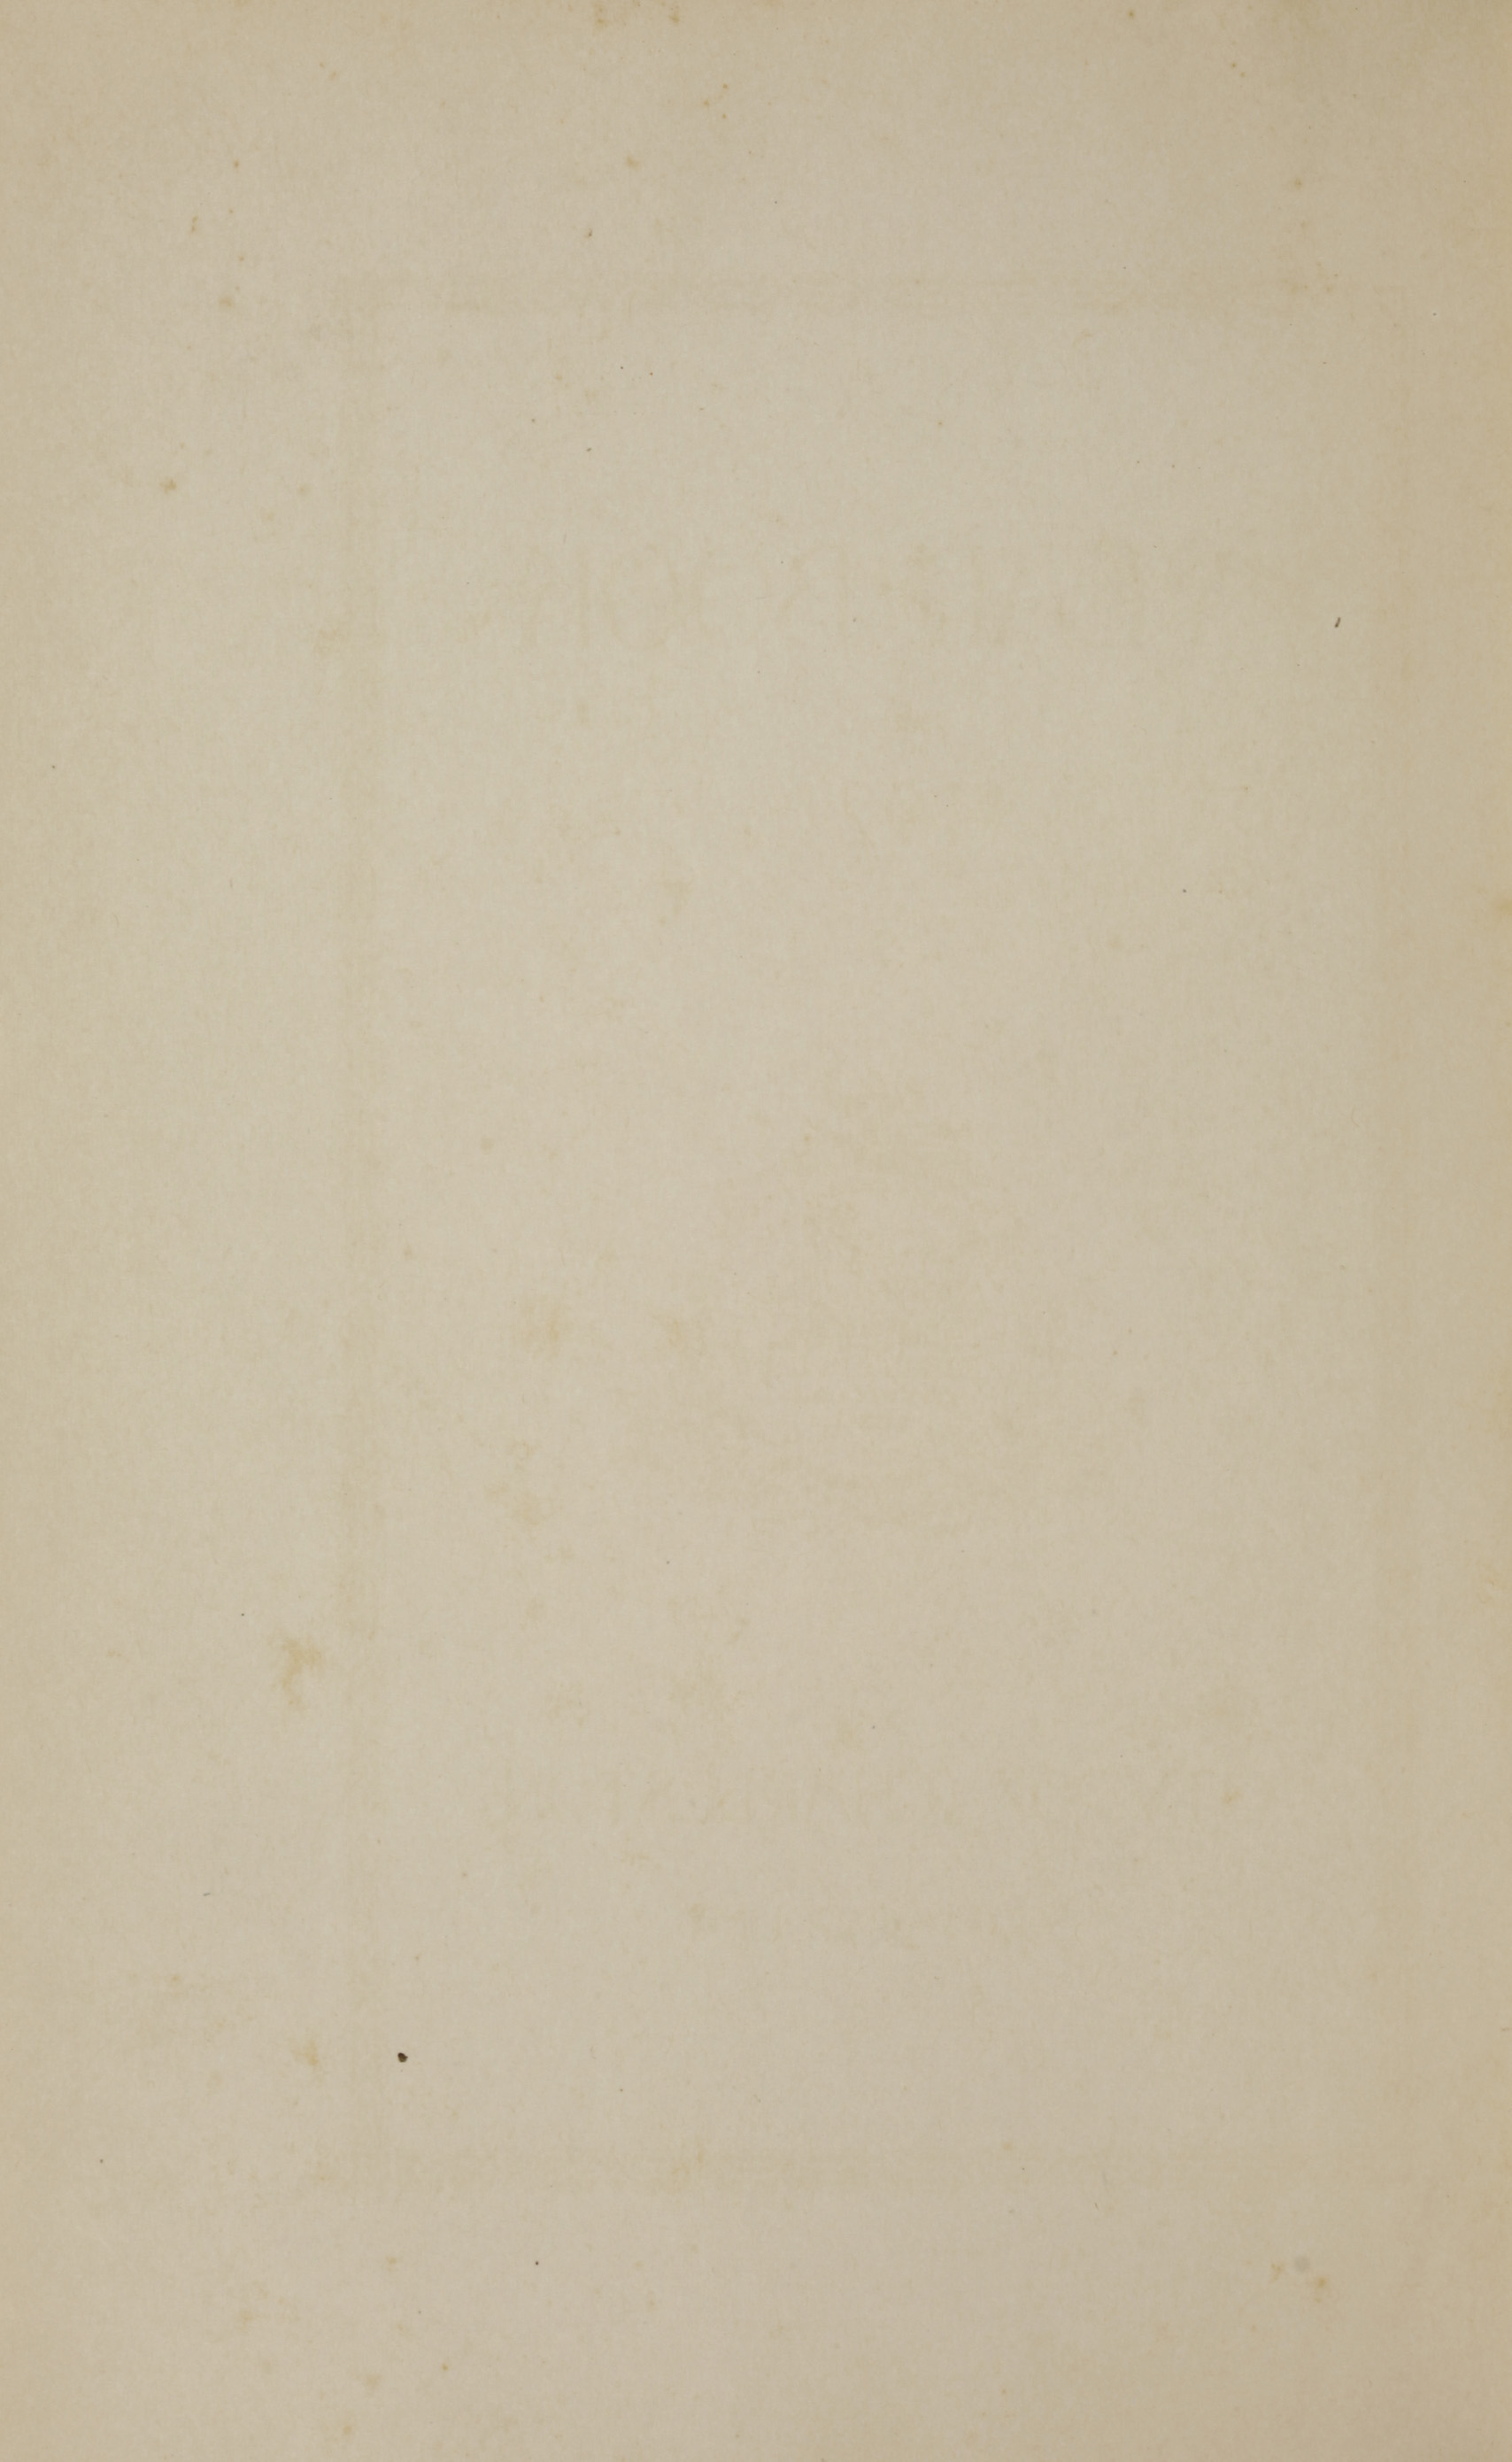 Charleston Yearbook, 1921, blank page